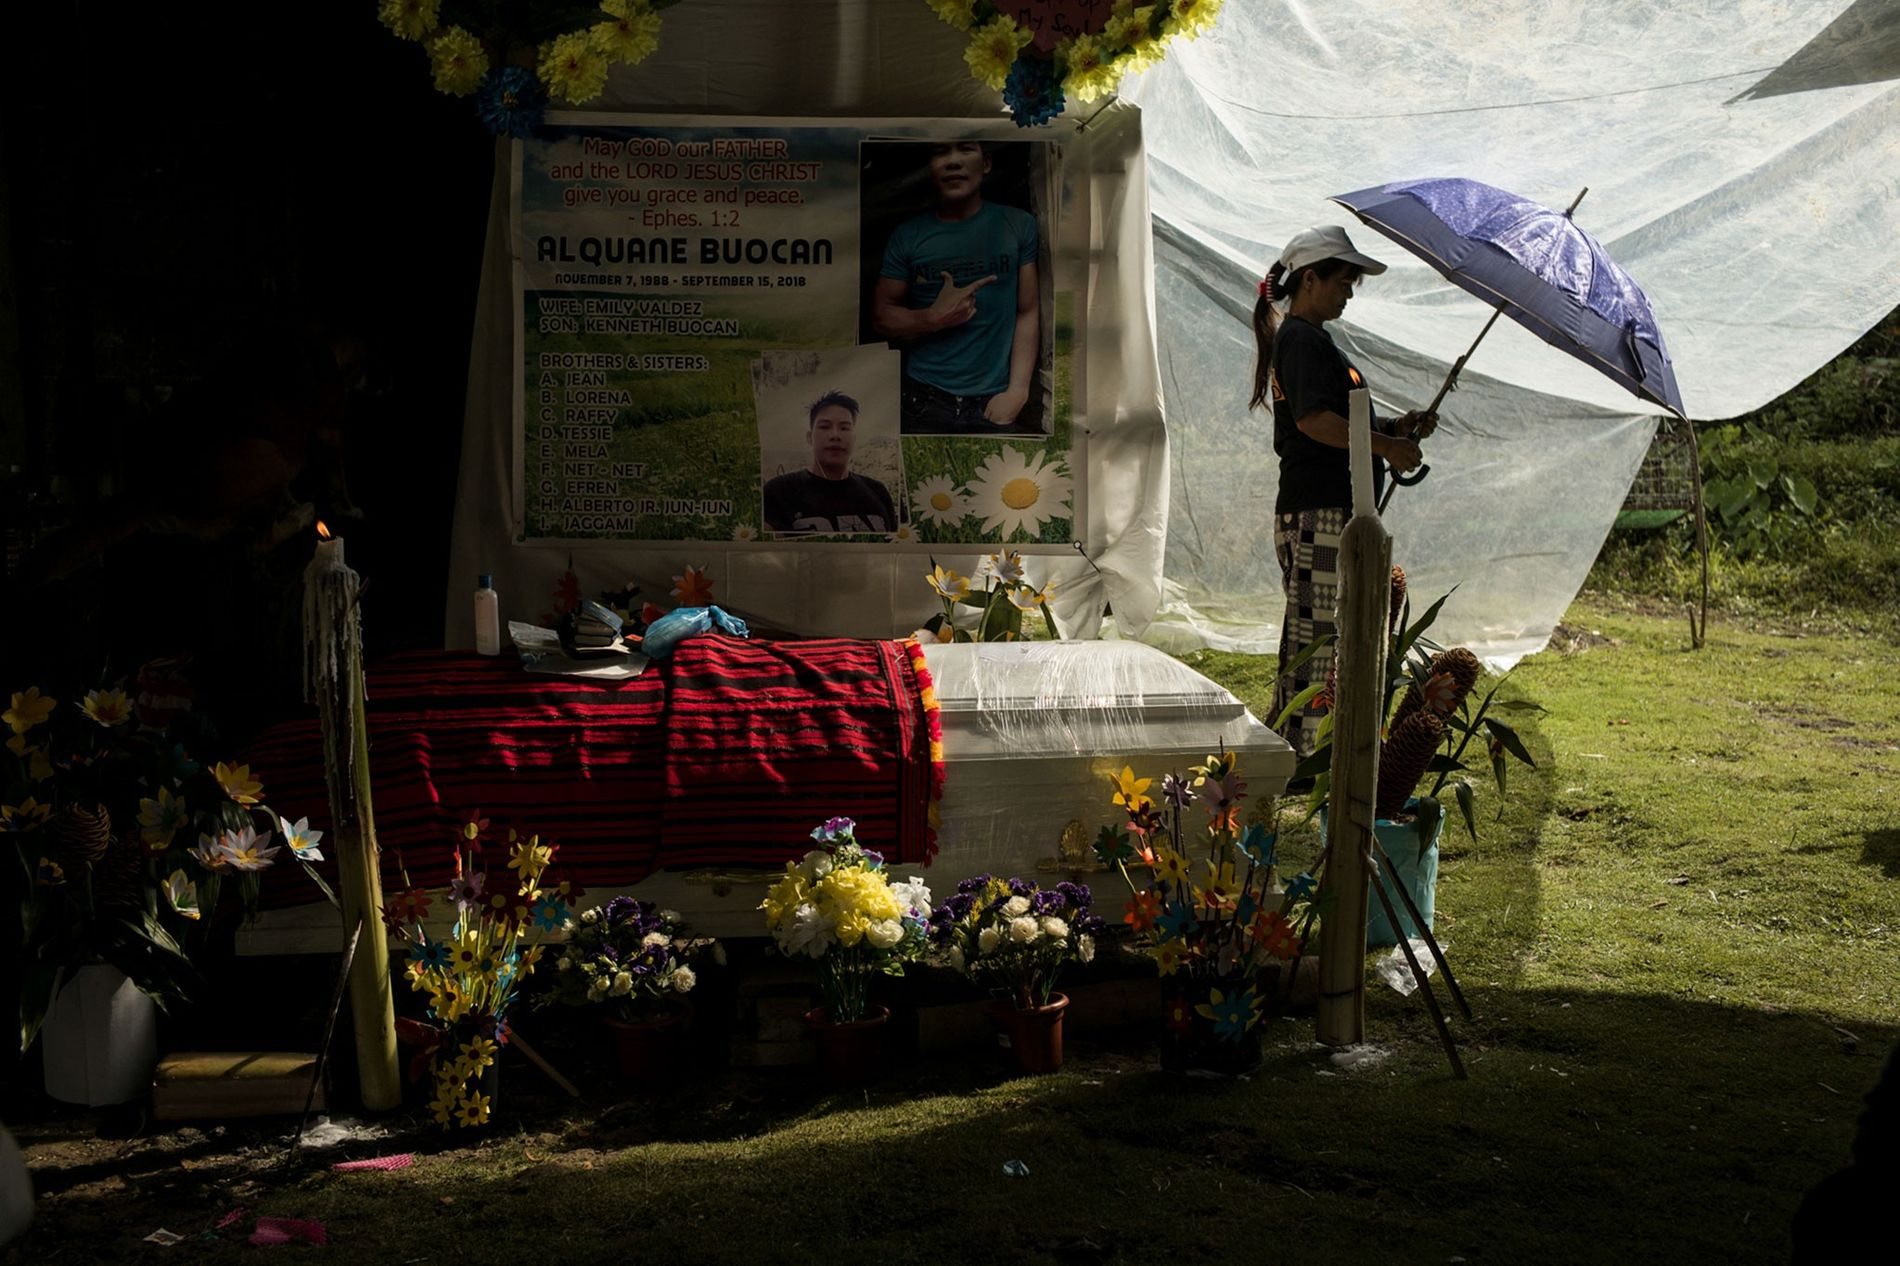 A banner above Buocan's casket includes a verse of Christian scripture and the names of his ...